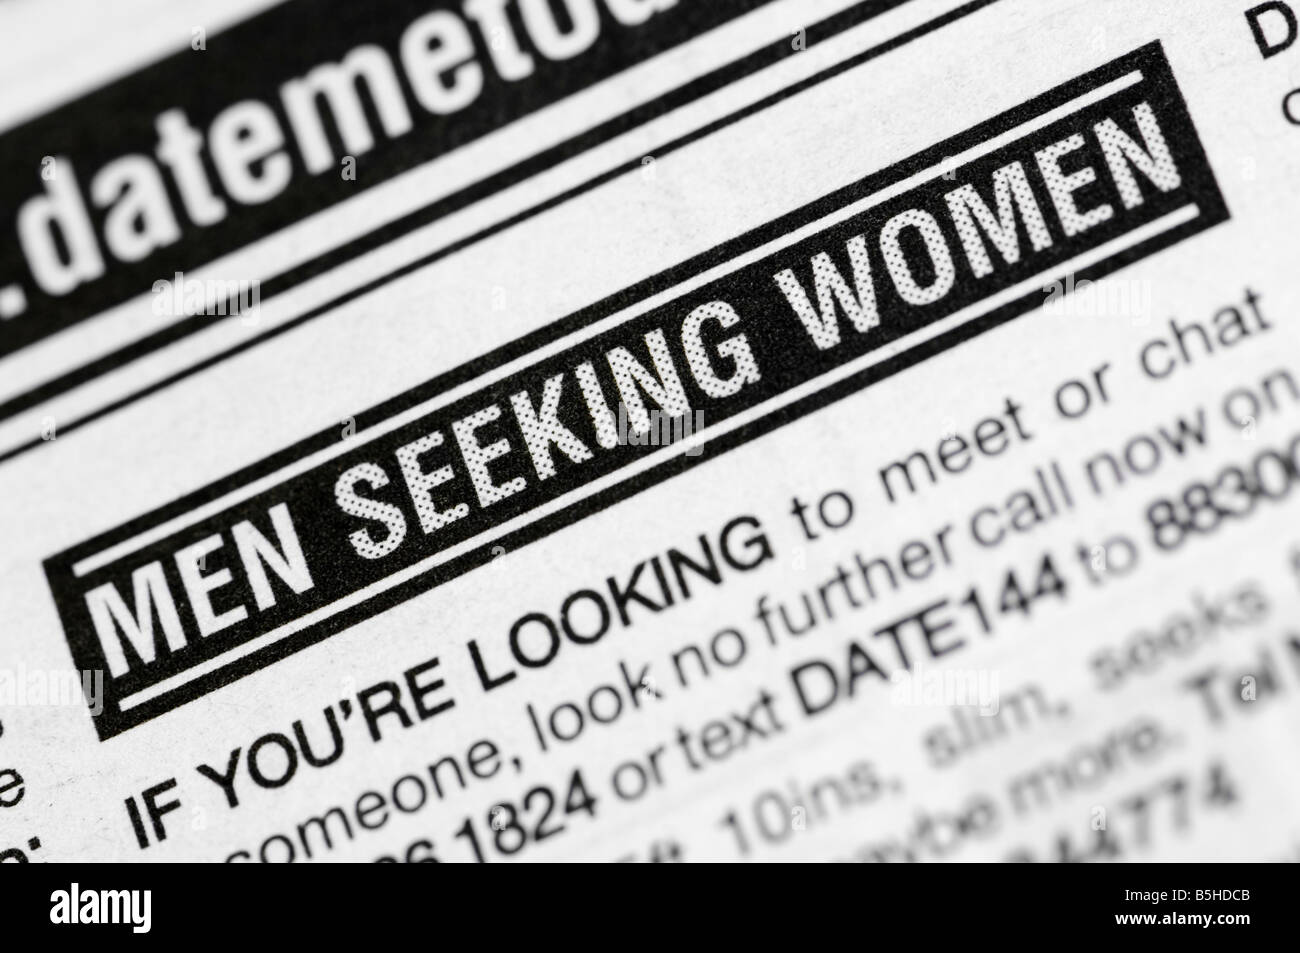 Atlanta women seeking men ads